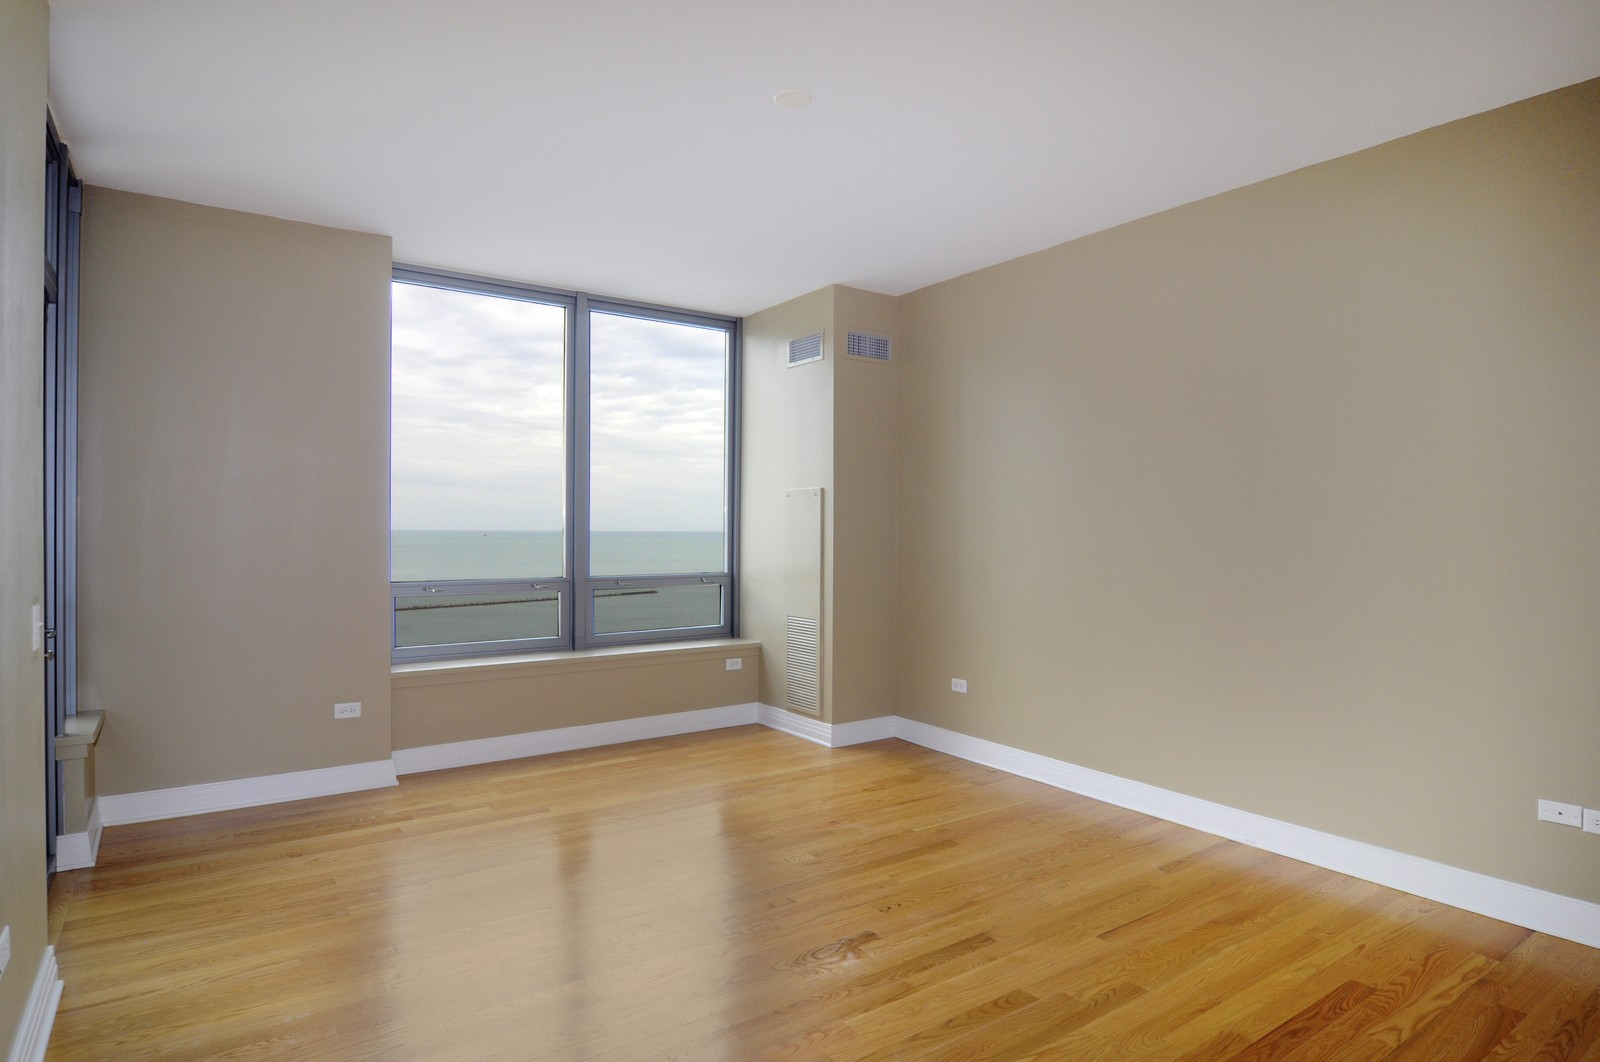 Real Estate Photography - 600 N Lake Shore Dr, Unit 2601, Chicago, IL, 60611 - Master Bedroom